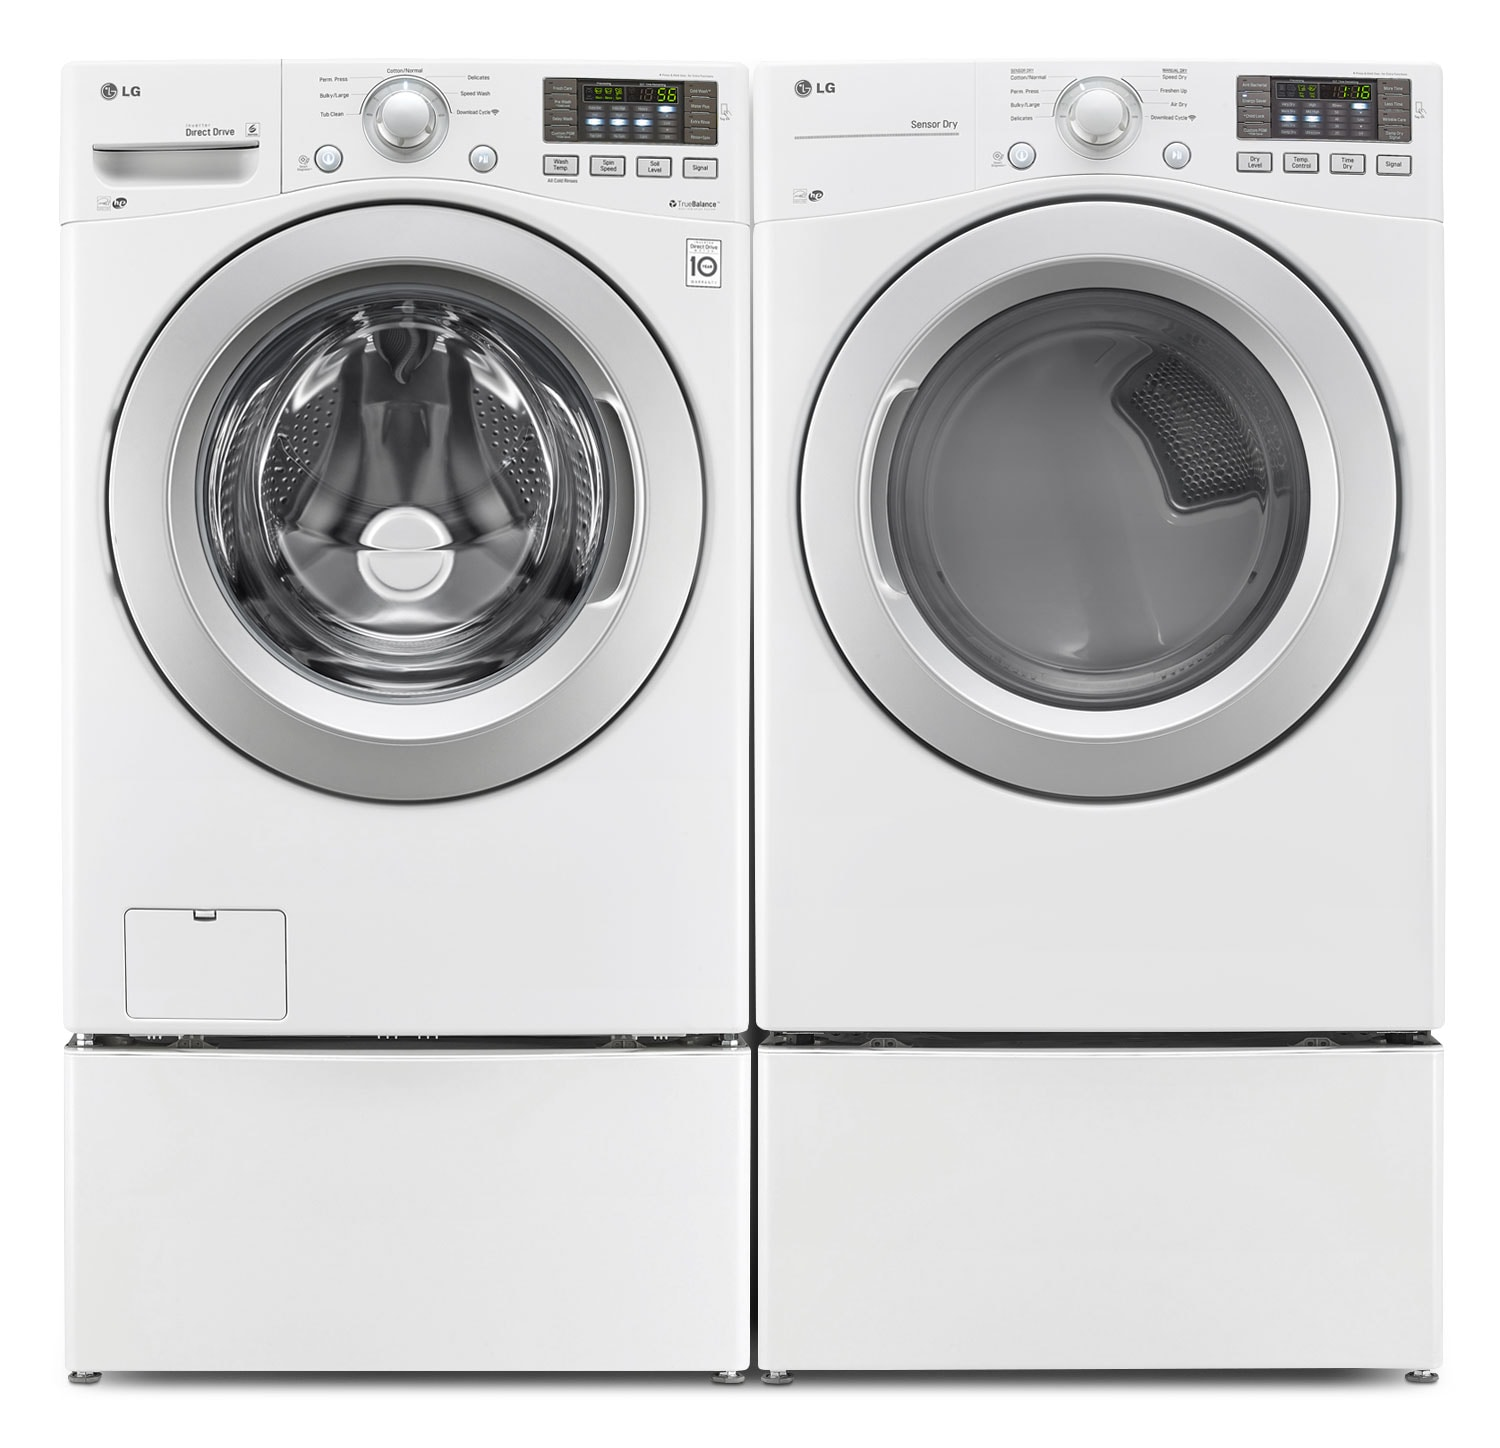 LG TWIN Wash™ 5.2 Cu. Ft. Washer, 7.4 Cu. Ft. Dryer, Pedestal Washer and Storage Pedestal